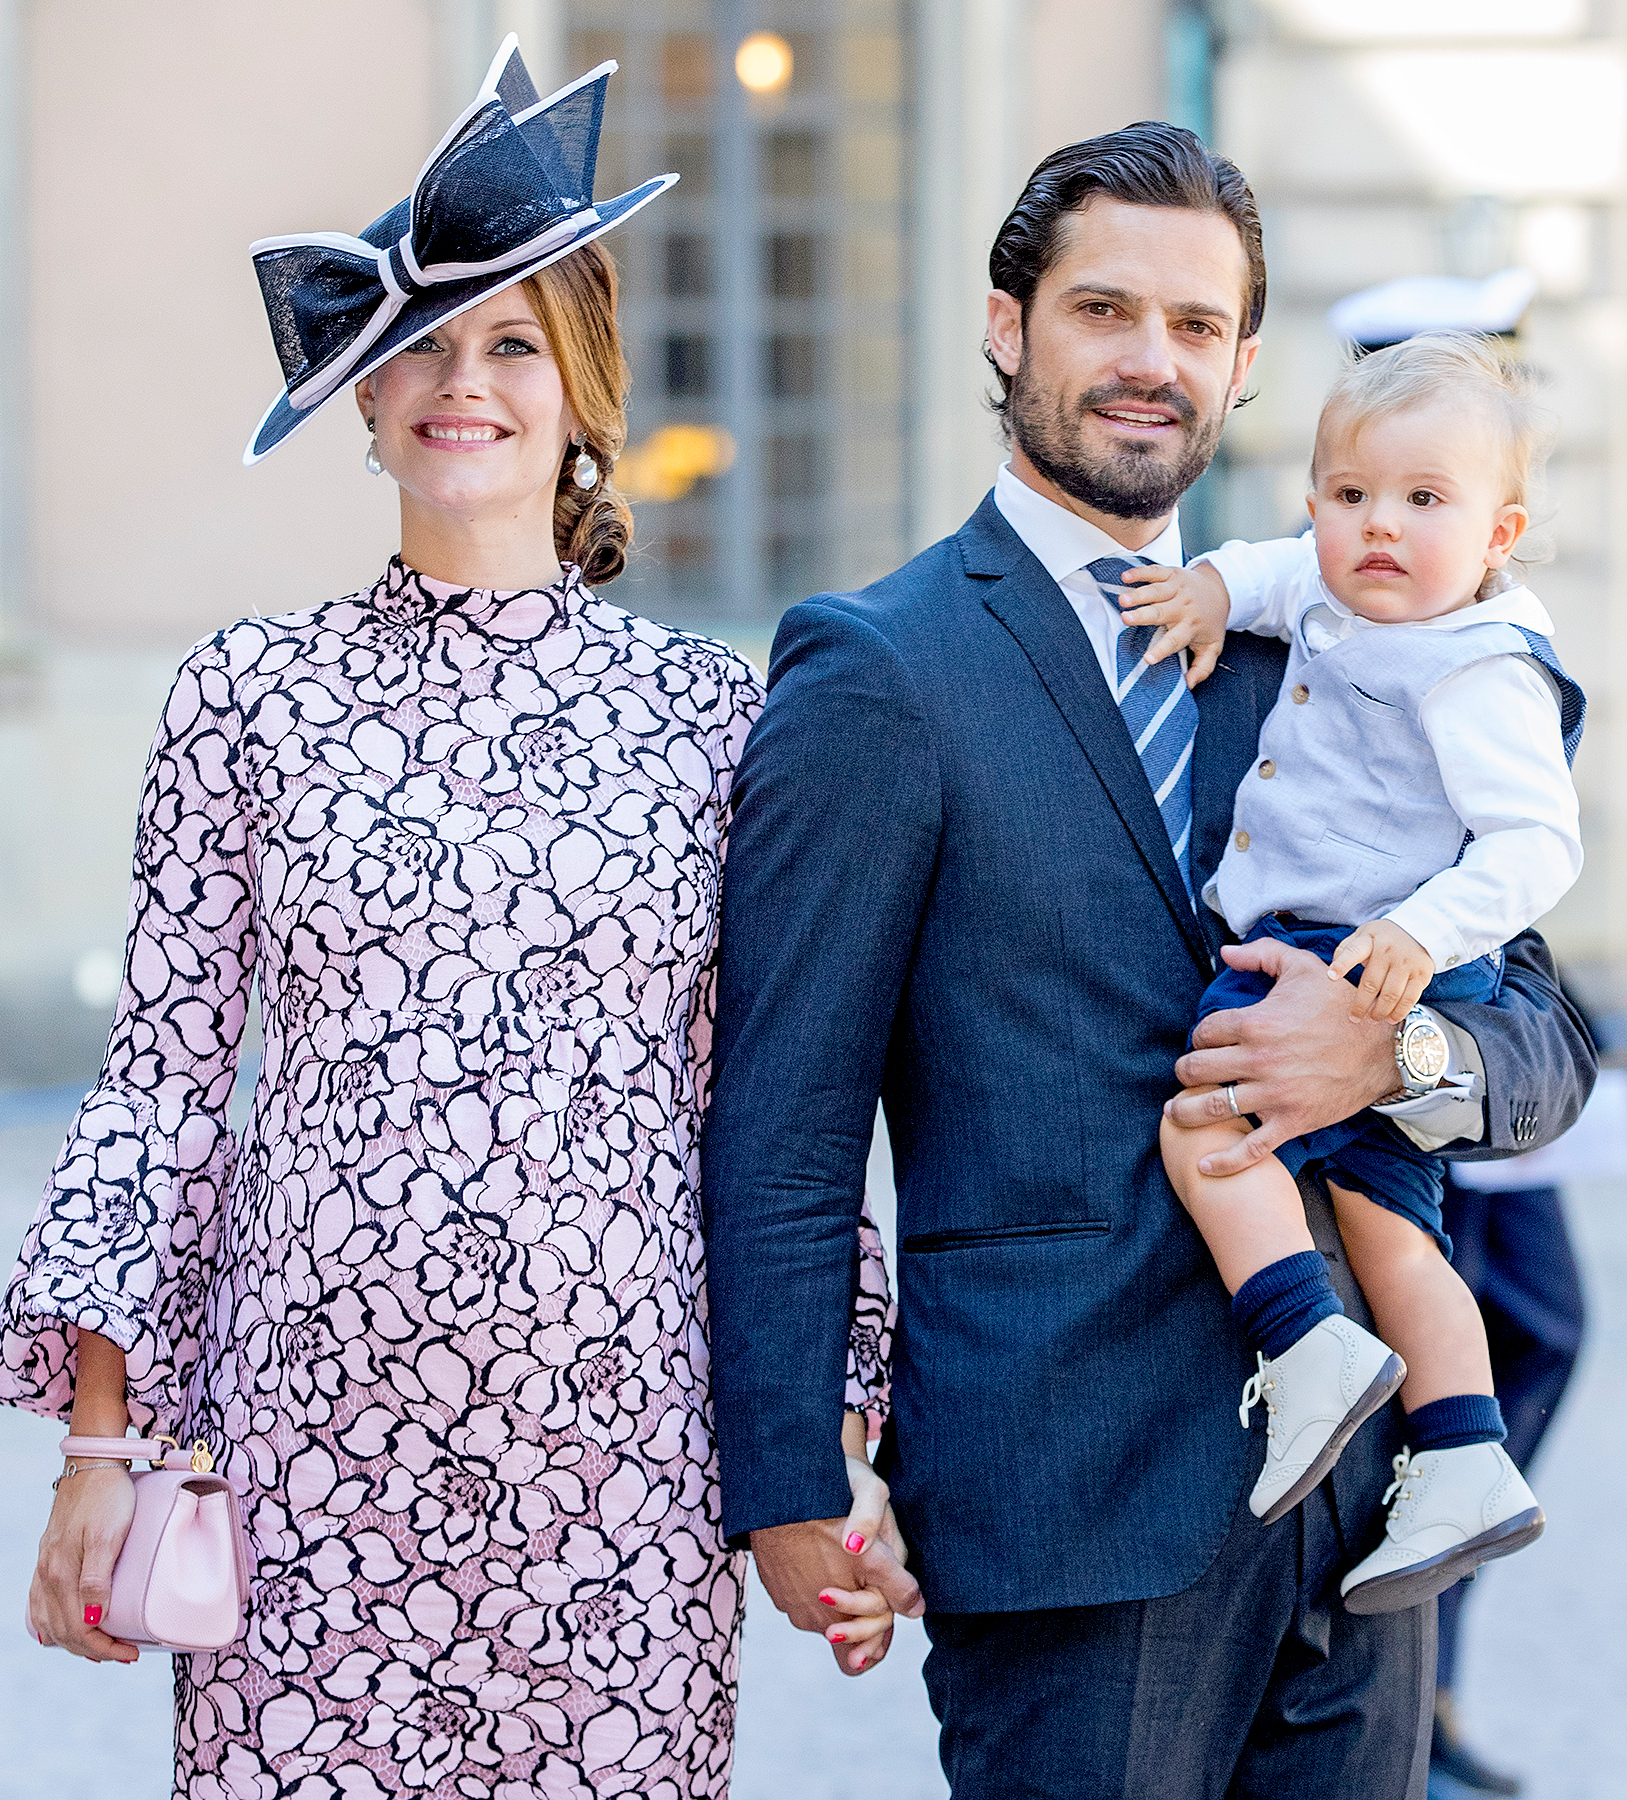 Prince Carl Philip of Sweden, Princess Sofia of Sweden and Prince Alexander arrive for a thanksgiving service on the occasion of The Crown Princess Victoria of Sweden's 40th birthday celebrations at the Royal Palace on July 14, 2017 in Stockholm, Sweden.